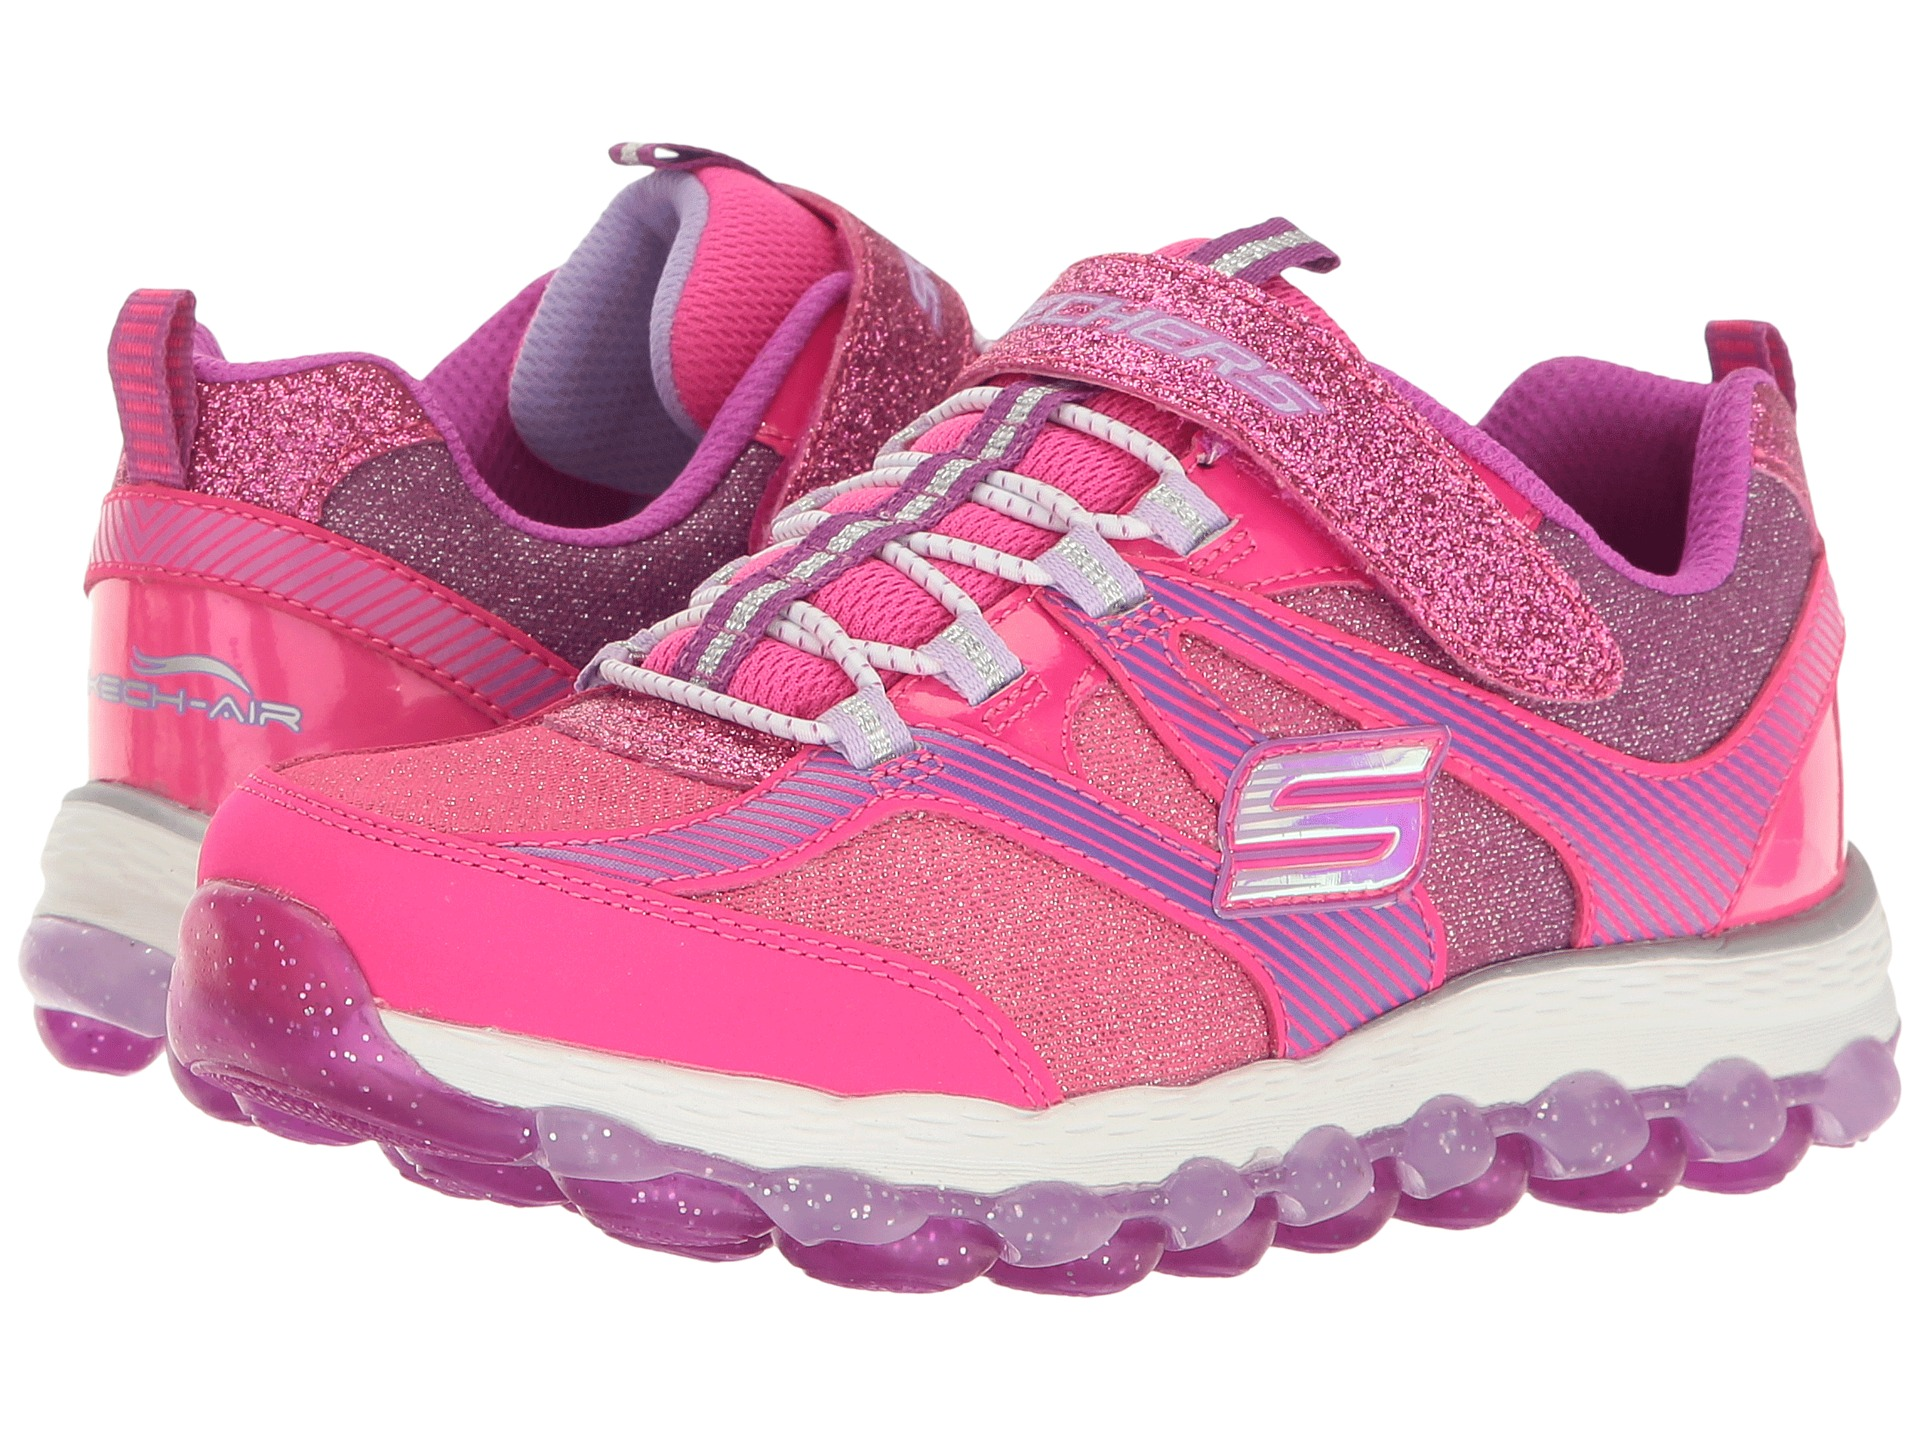 Skechers Big Girls Shoes